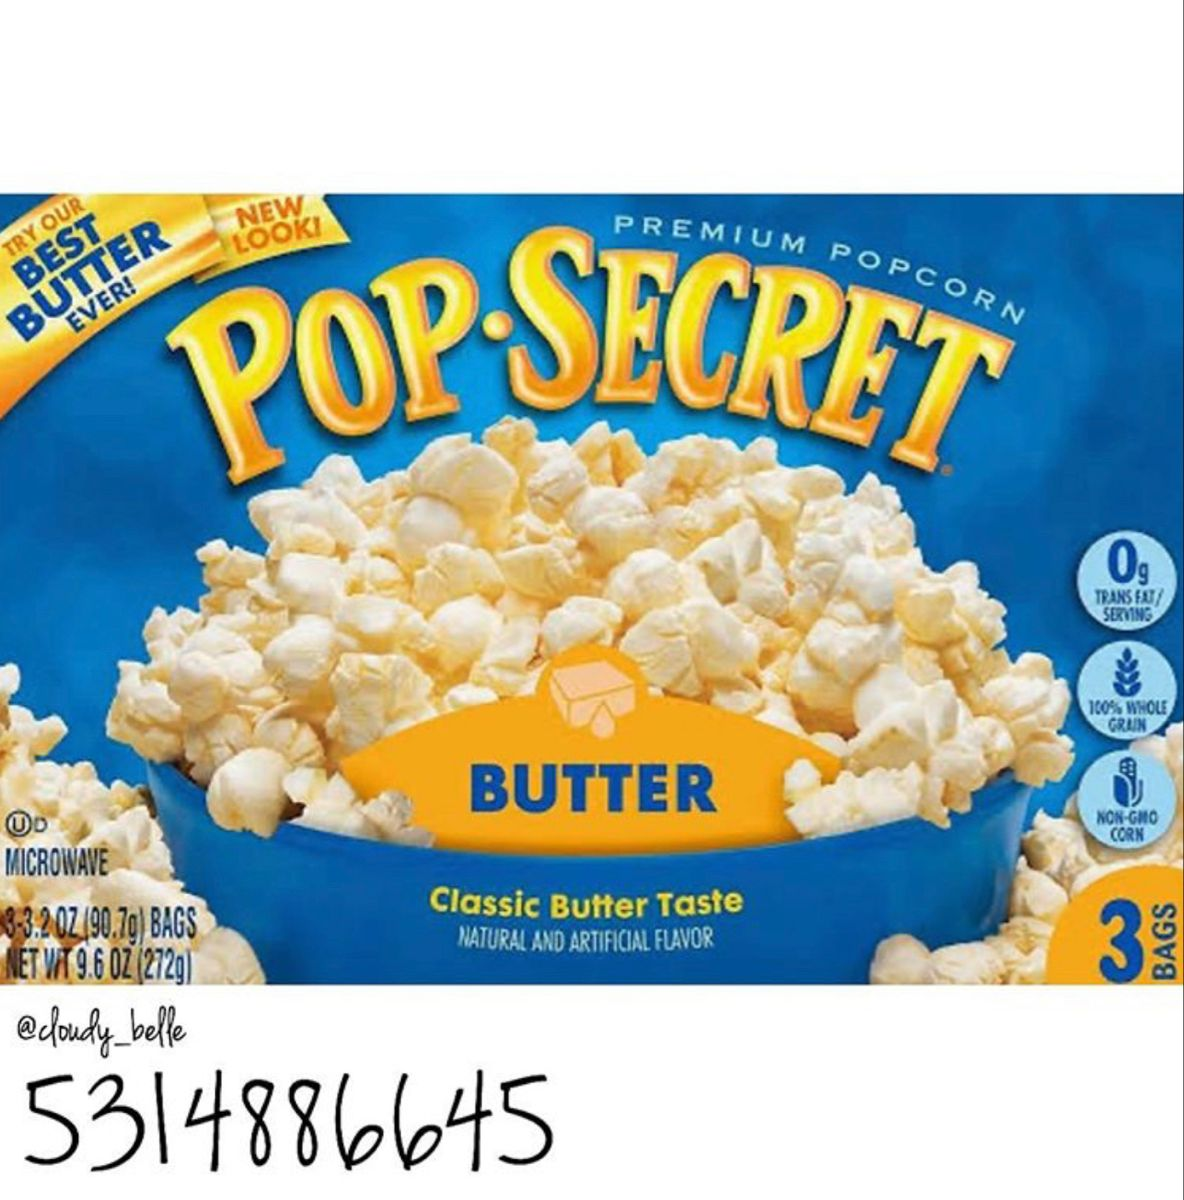 7c96caaa86b0f8fed0170306e89619a3 - How To Get Popcorn Butter Stains Out Of Clothes